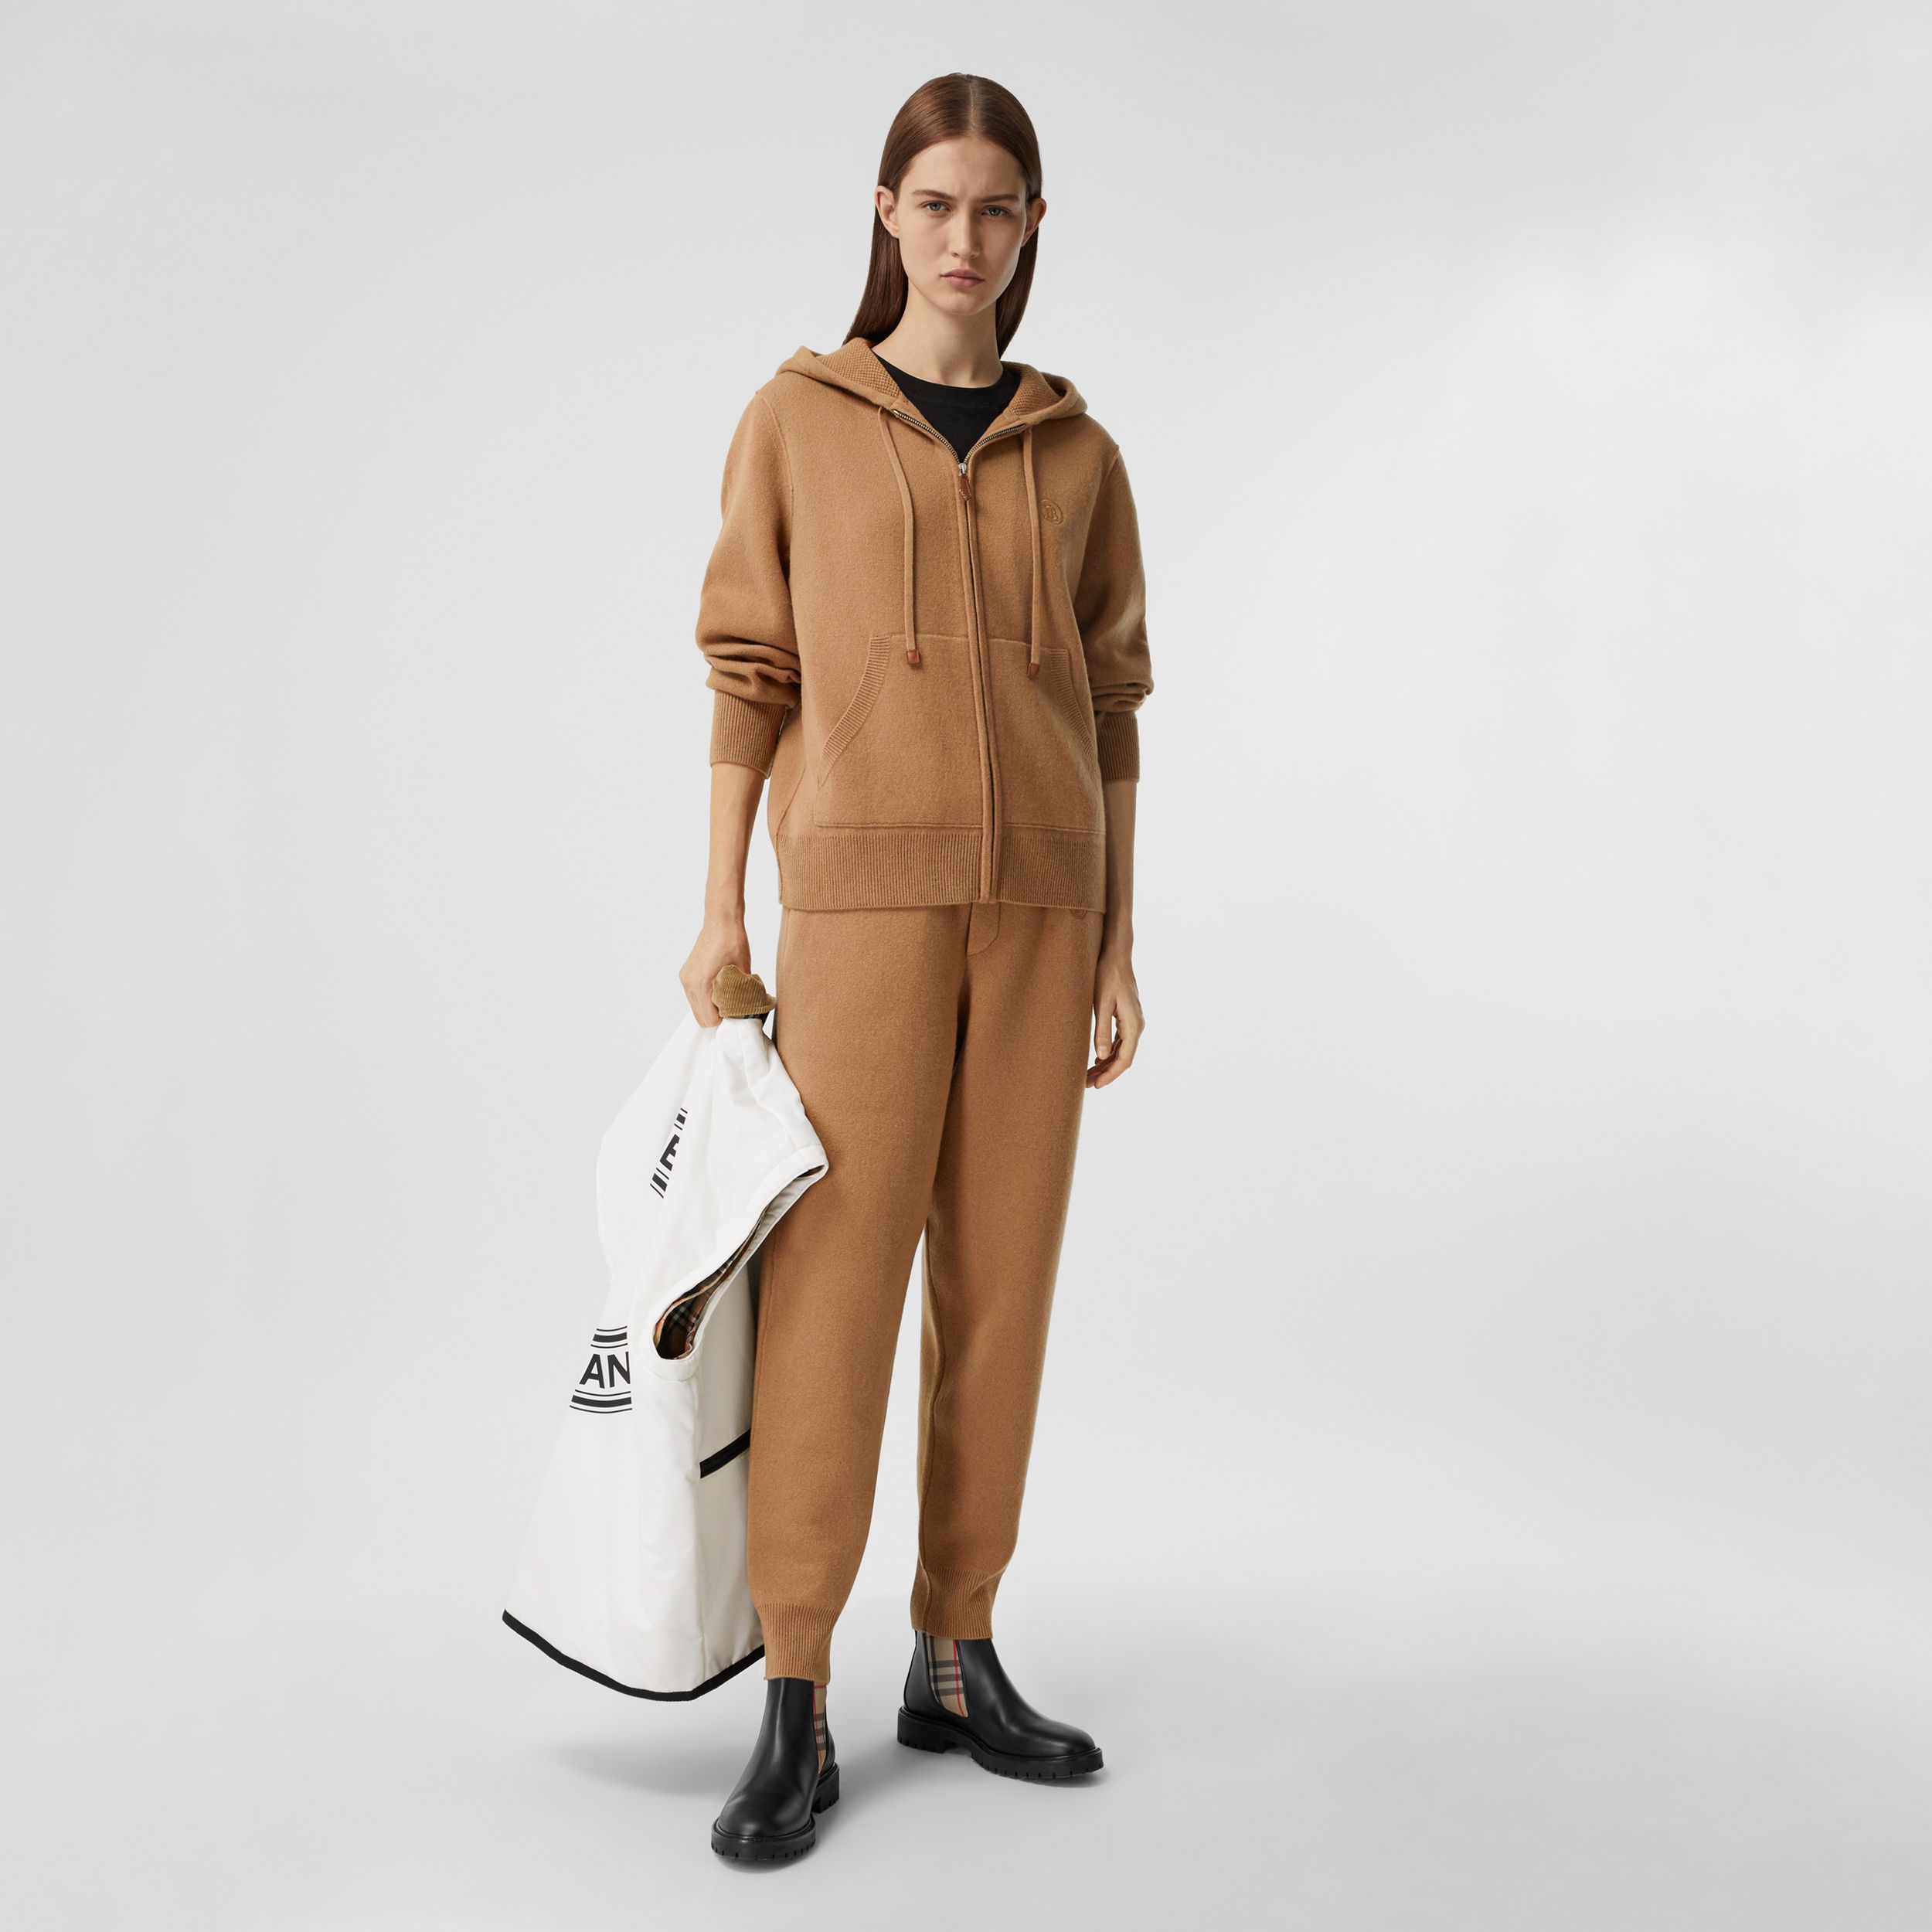 Monogram Motif Cashmere Blend Hooded Top in Camel - Women | Burberry Canada - 1